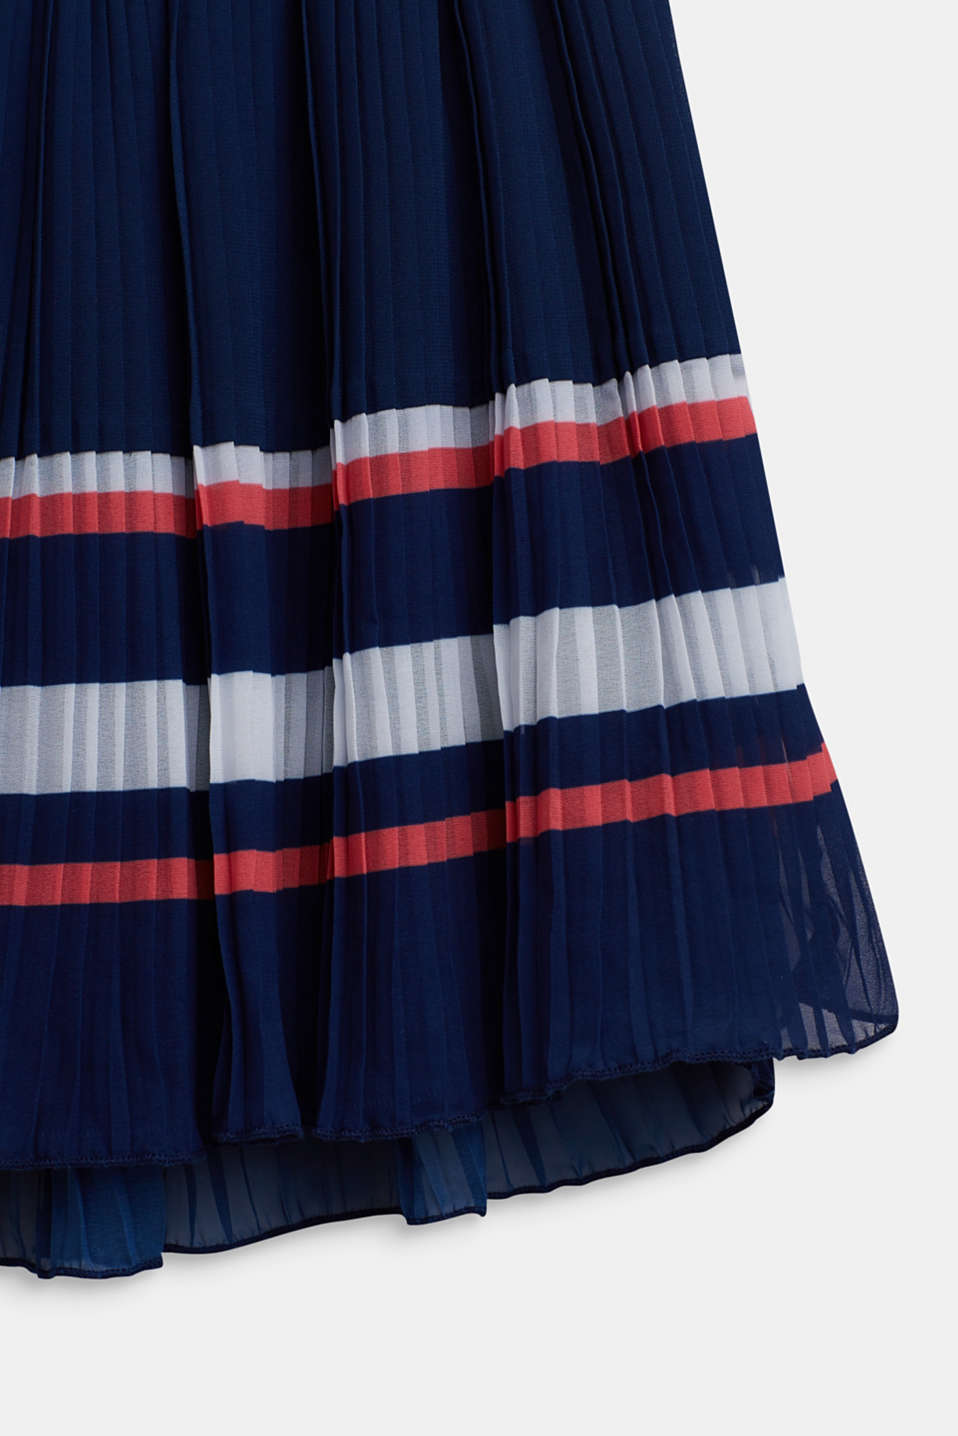 Plissé skirt in chiffon, LCMARINE BLUE, detail image number 2